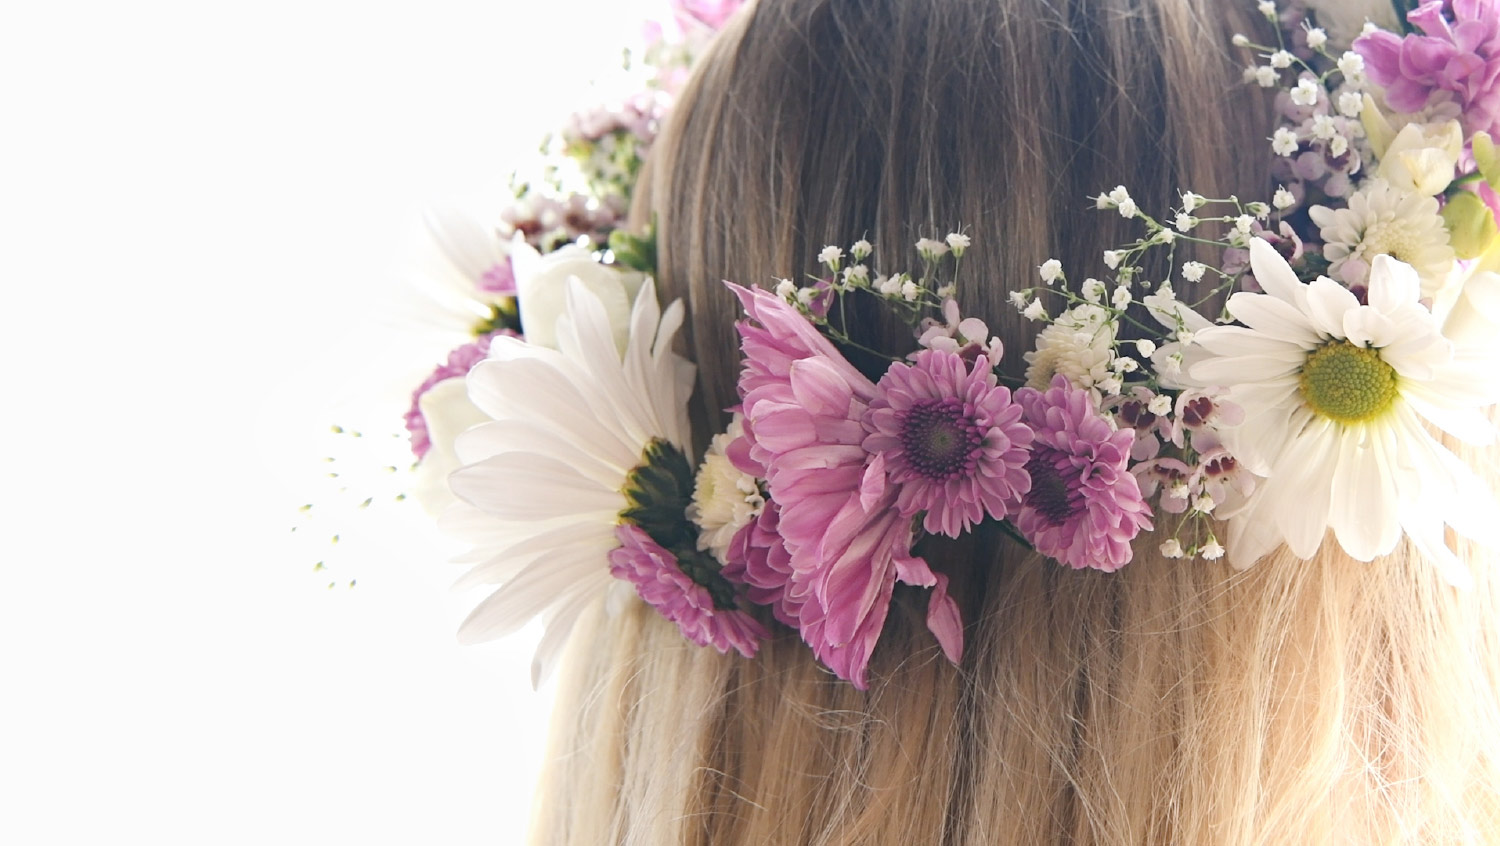 flower crowns, a craft that makes money